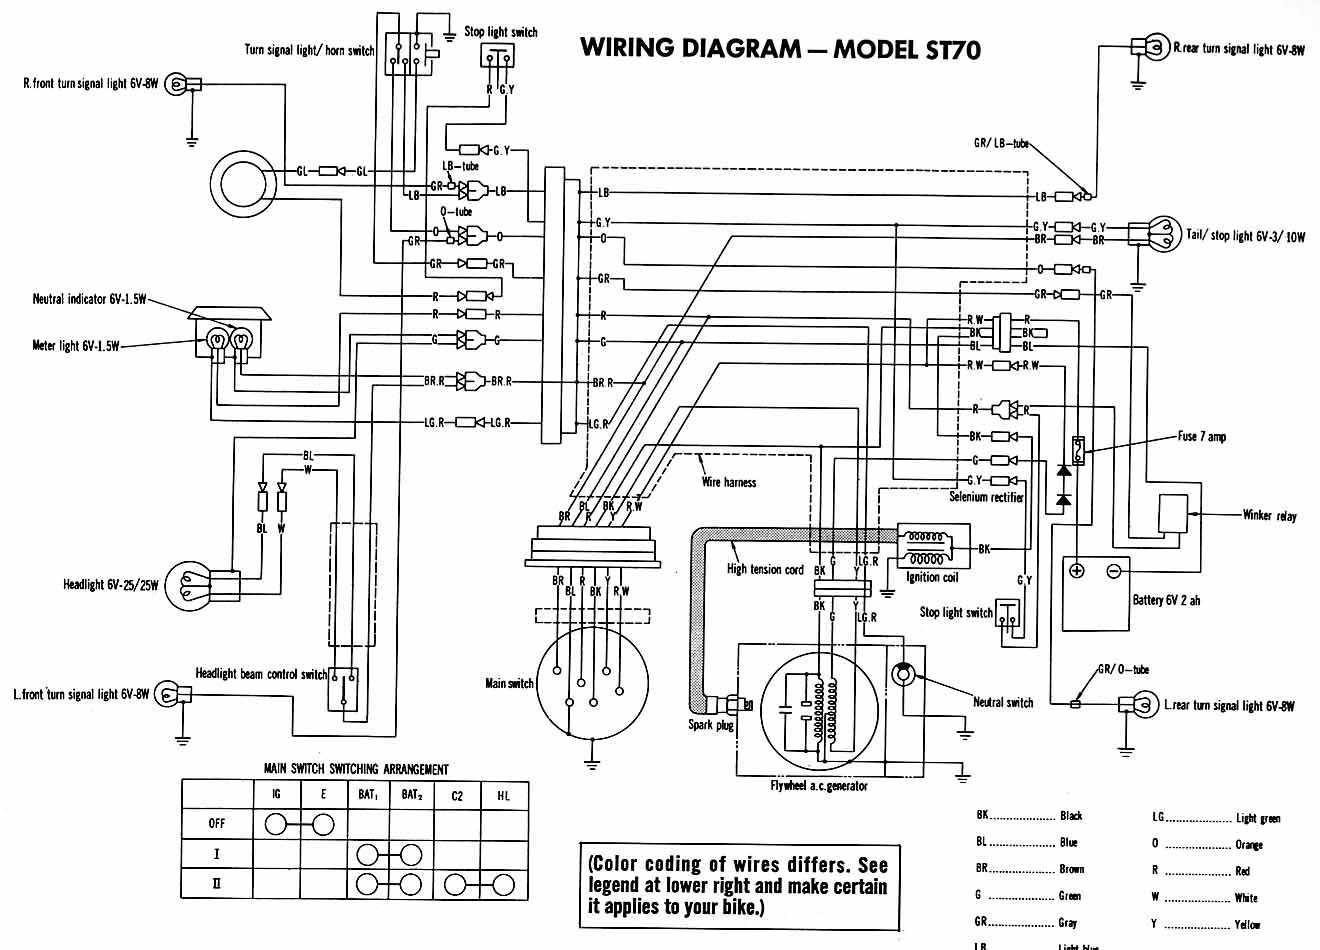 Wonderful Honda 600 Wire Diagram Images Electrical Circuit